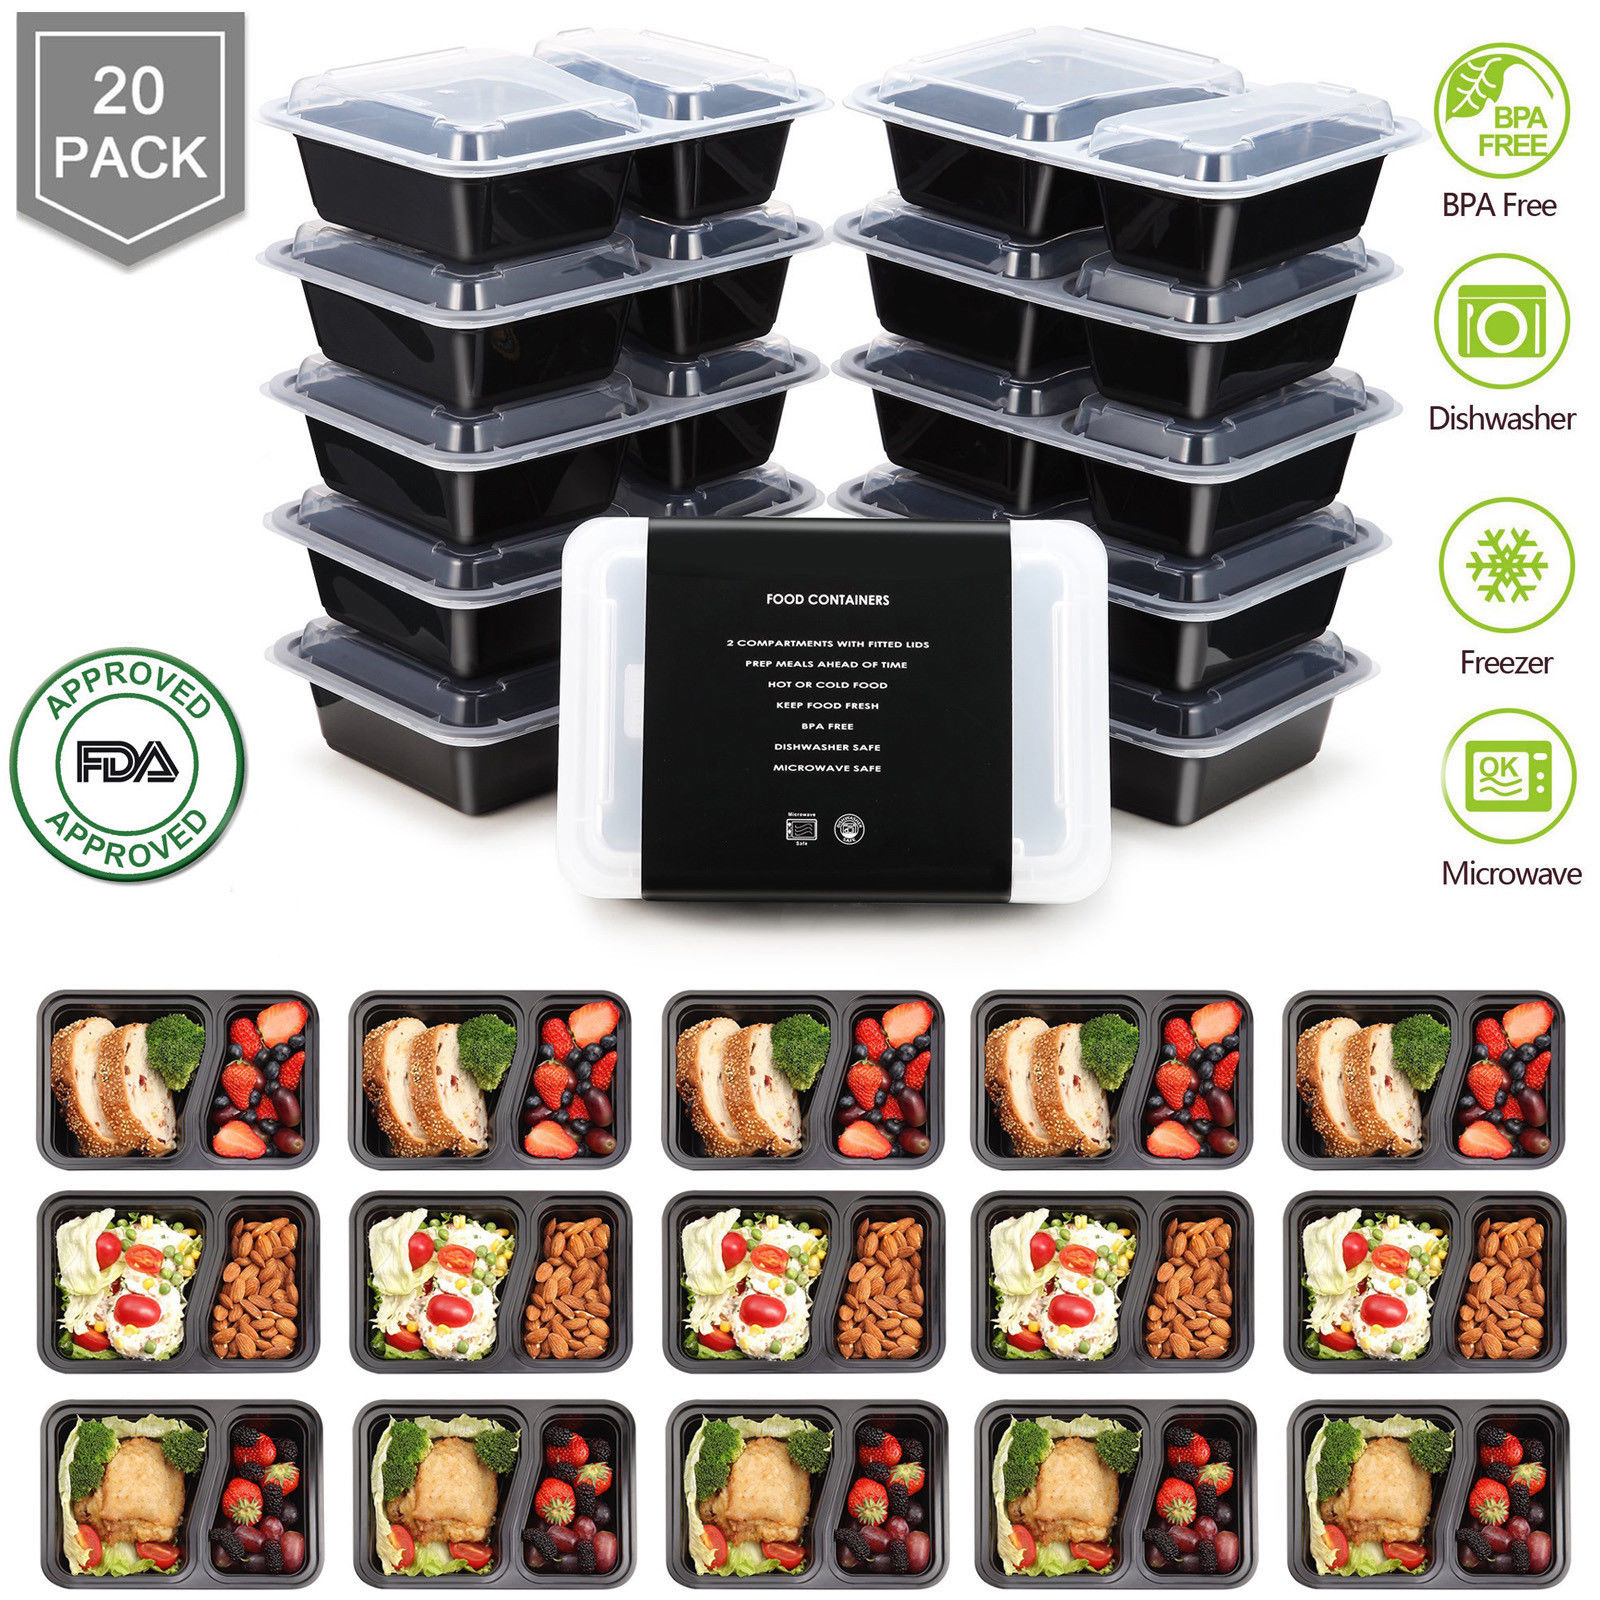 20 Meal Prep Containers Food Storage 2 Compartment Plastic Reusable Microwavable 1